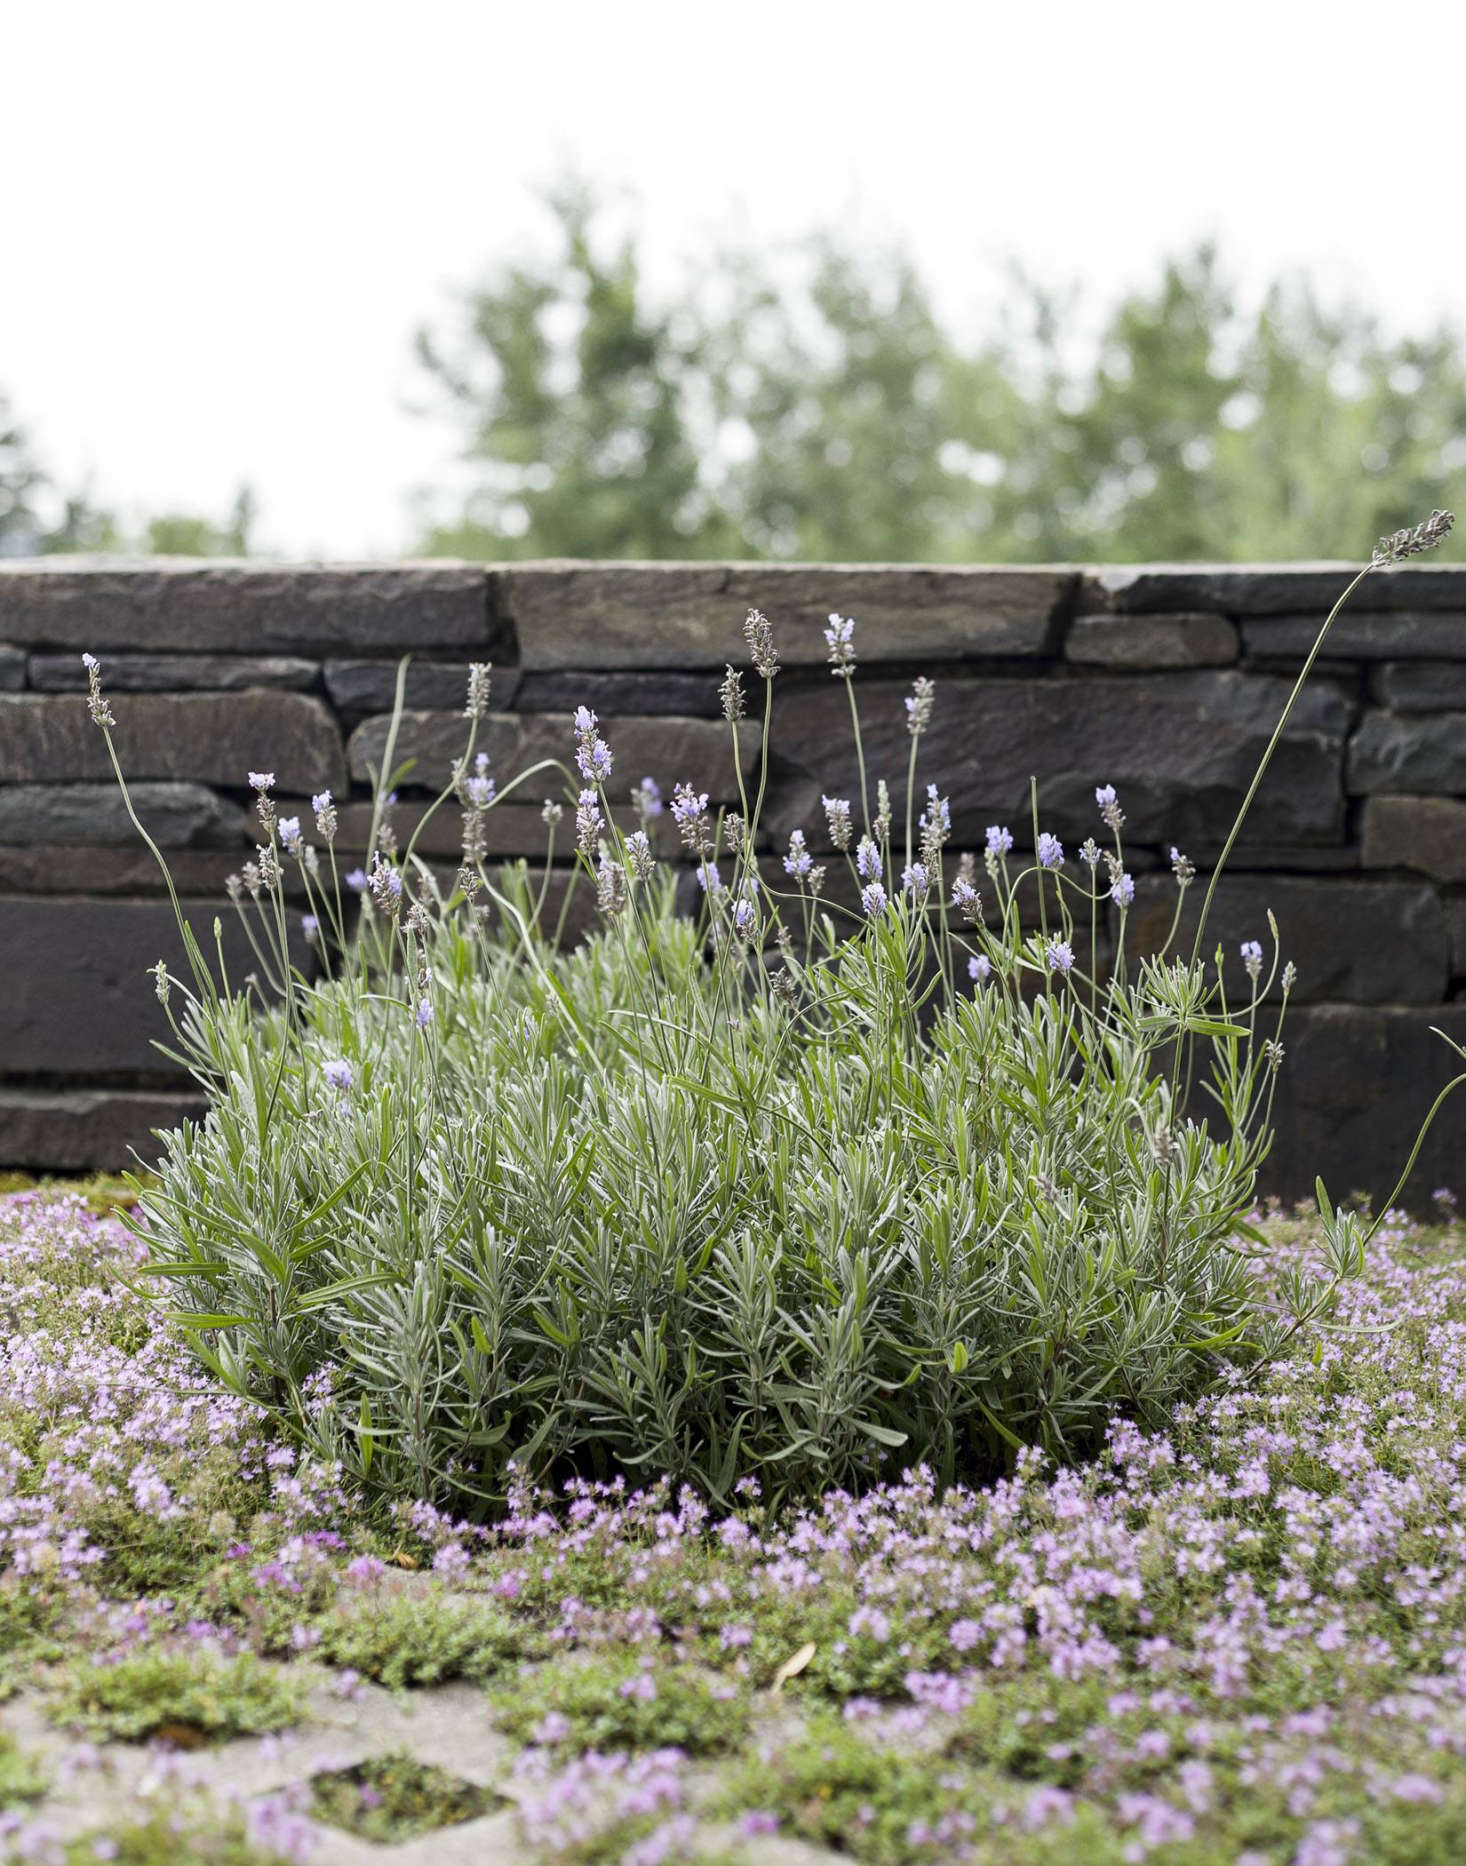 Flowering thyme and rosemary grow in Grasscrete concrete pavers on a patio that architect Steven Harris and landscape architect Lucien Rees Roberts built at their precisely detailed weekend retreat on a 50-acre swath of land in upstate New York. Photograph by Matthew Williams for Gardenista.